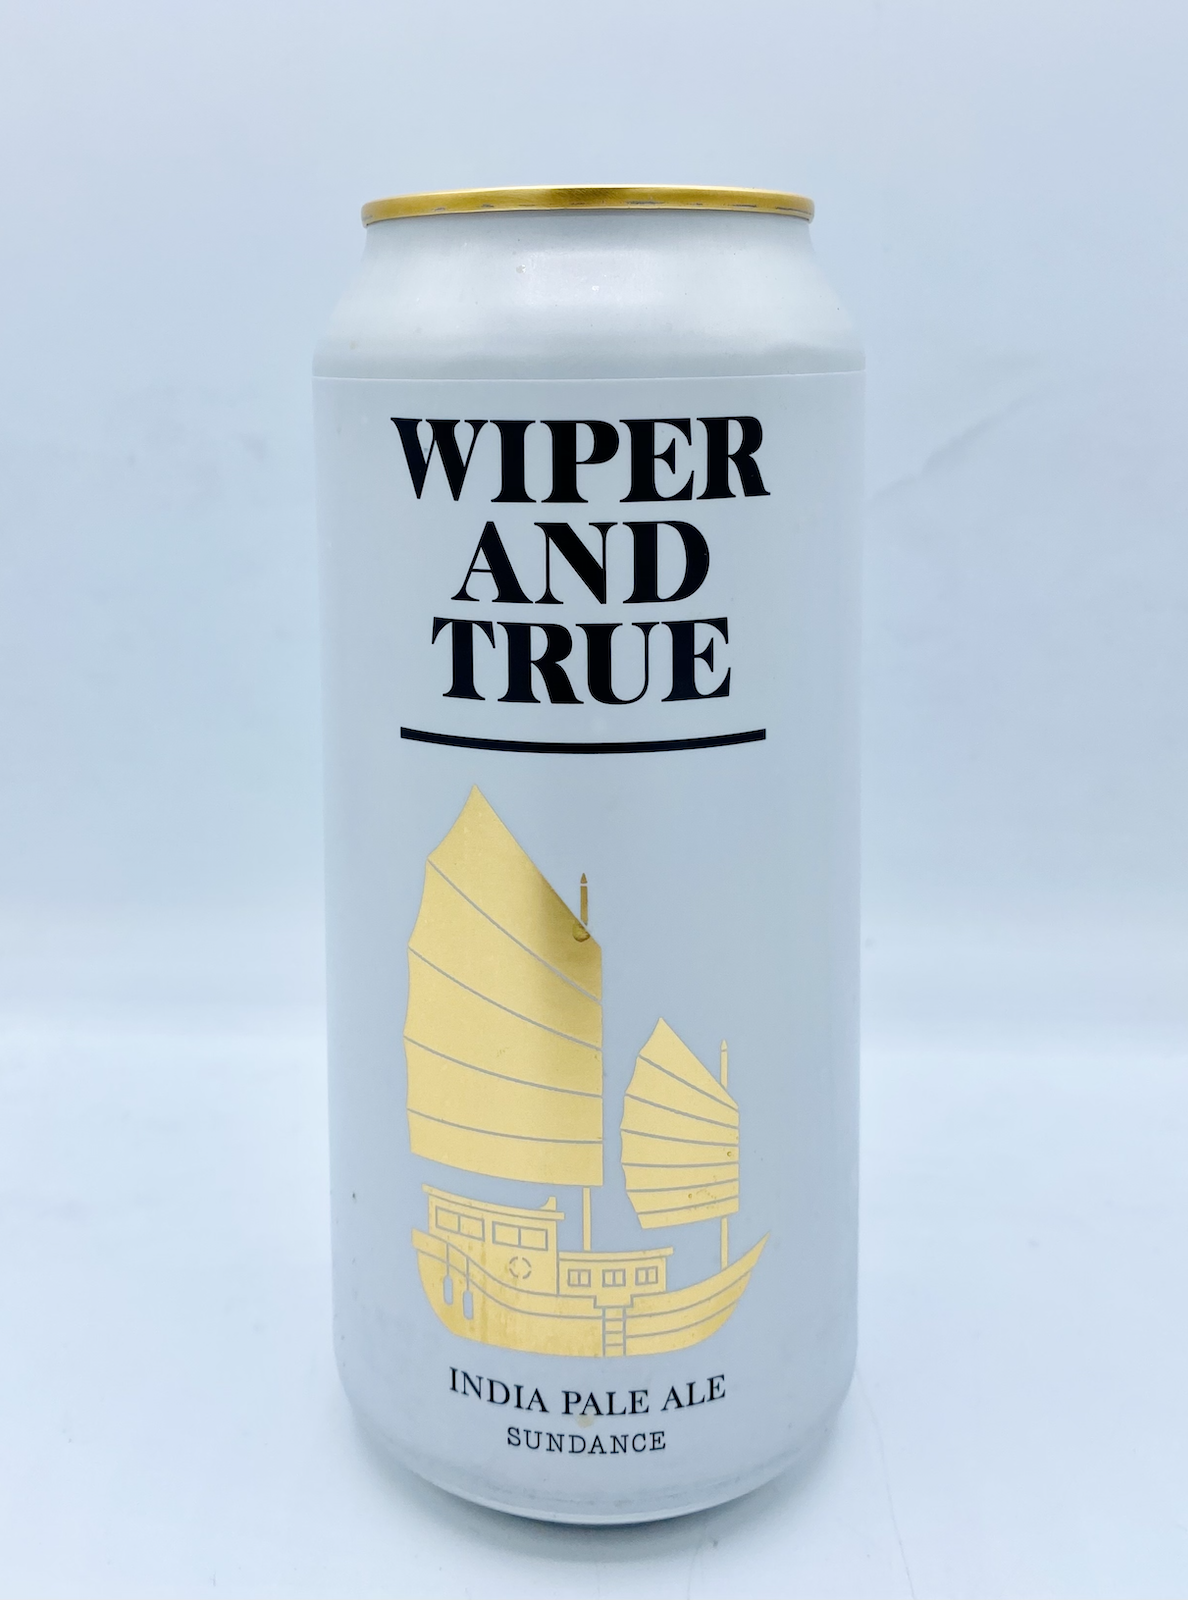 Wiper and True - Sundance 5.6%